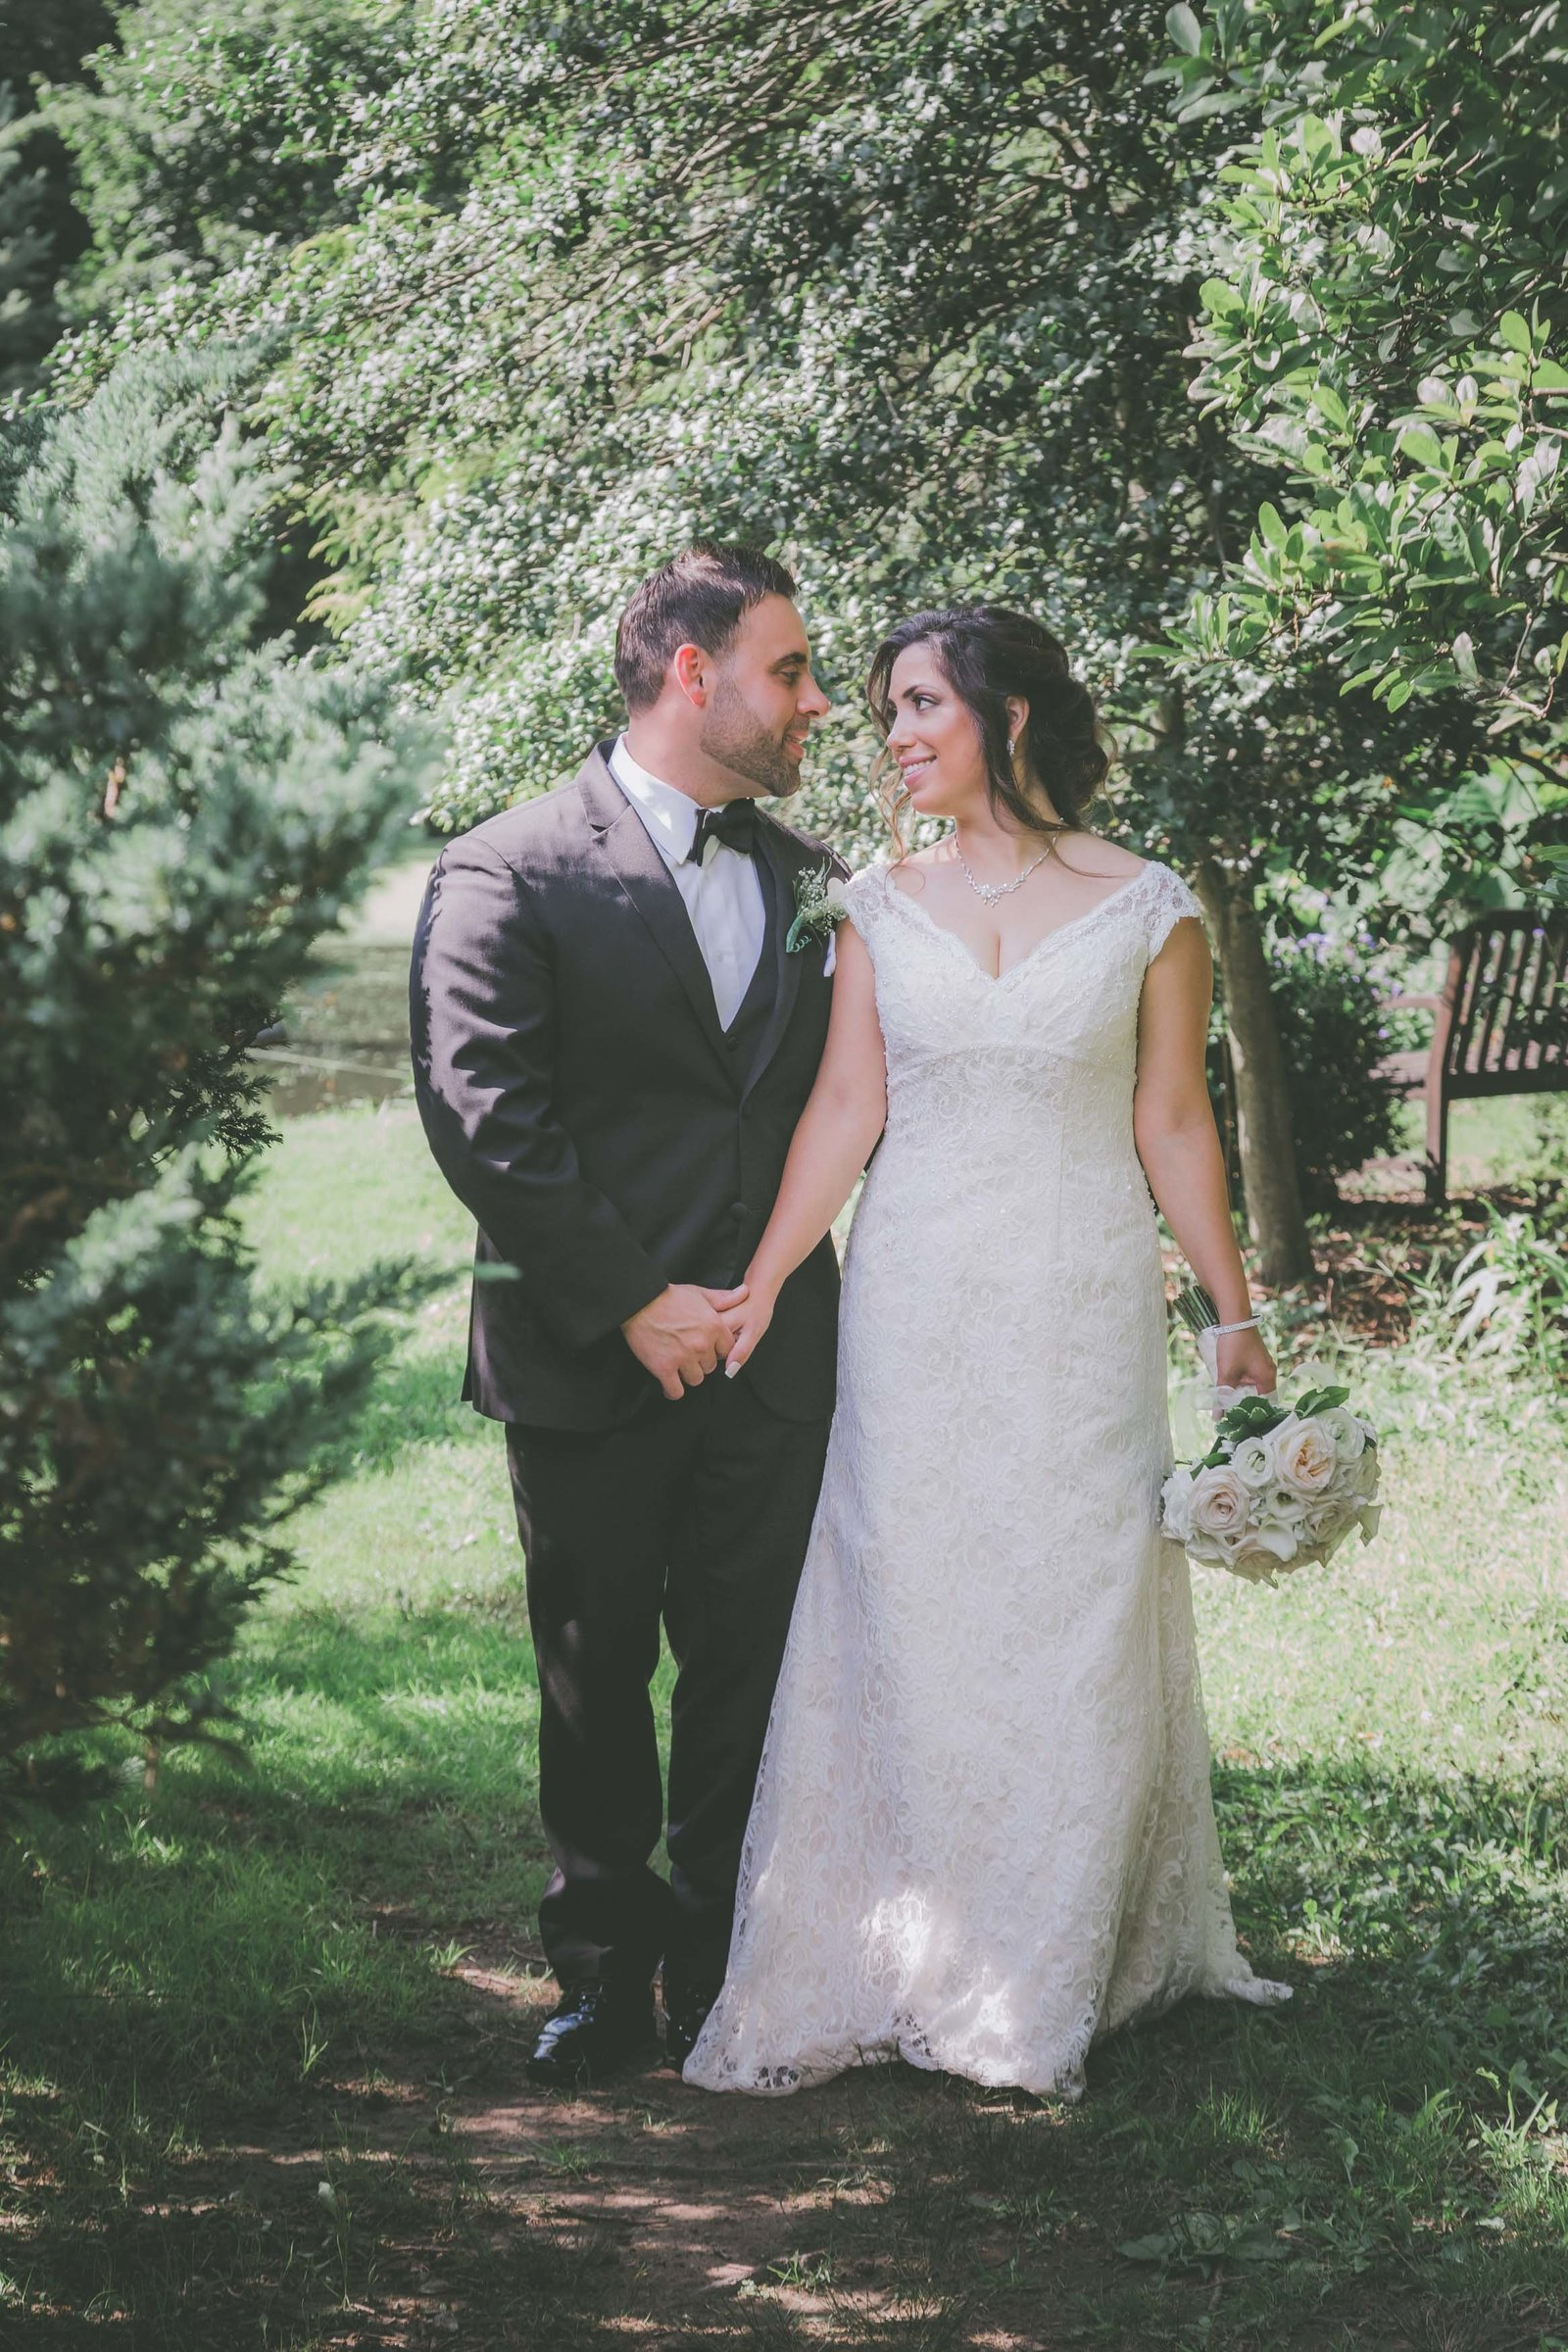 A couple hold hands and look at each other in a California garden for their elopement.